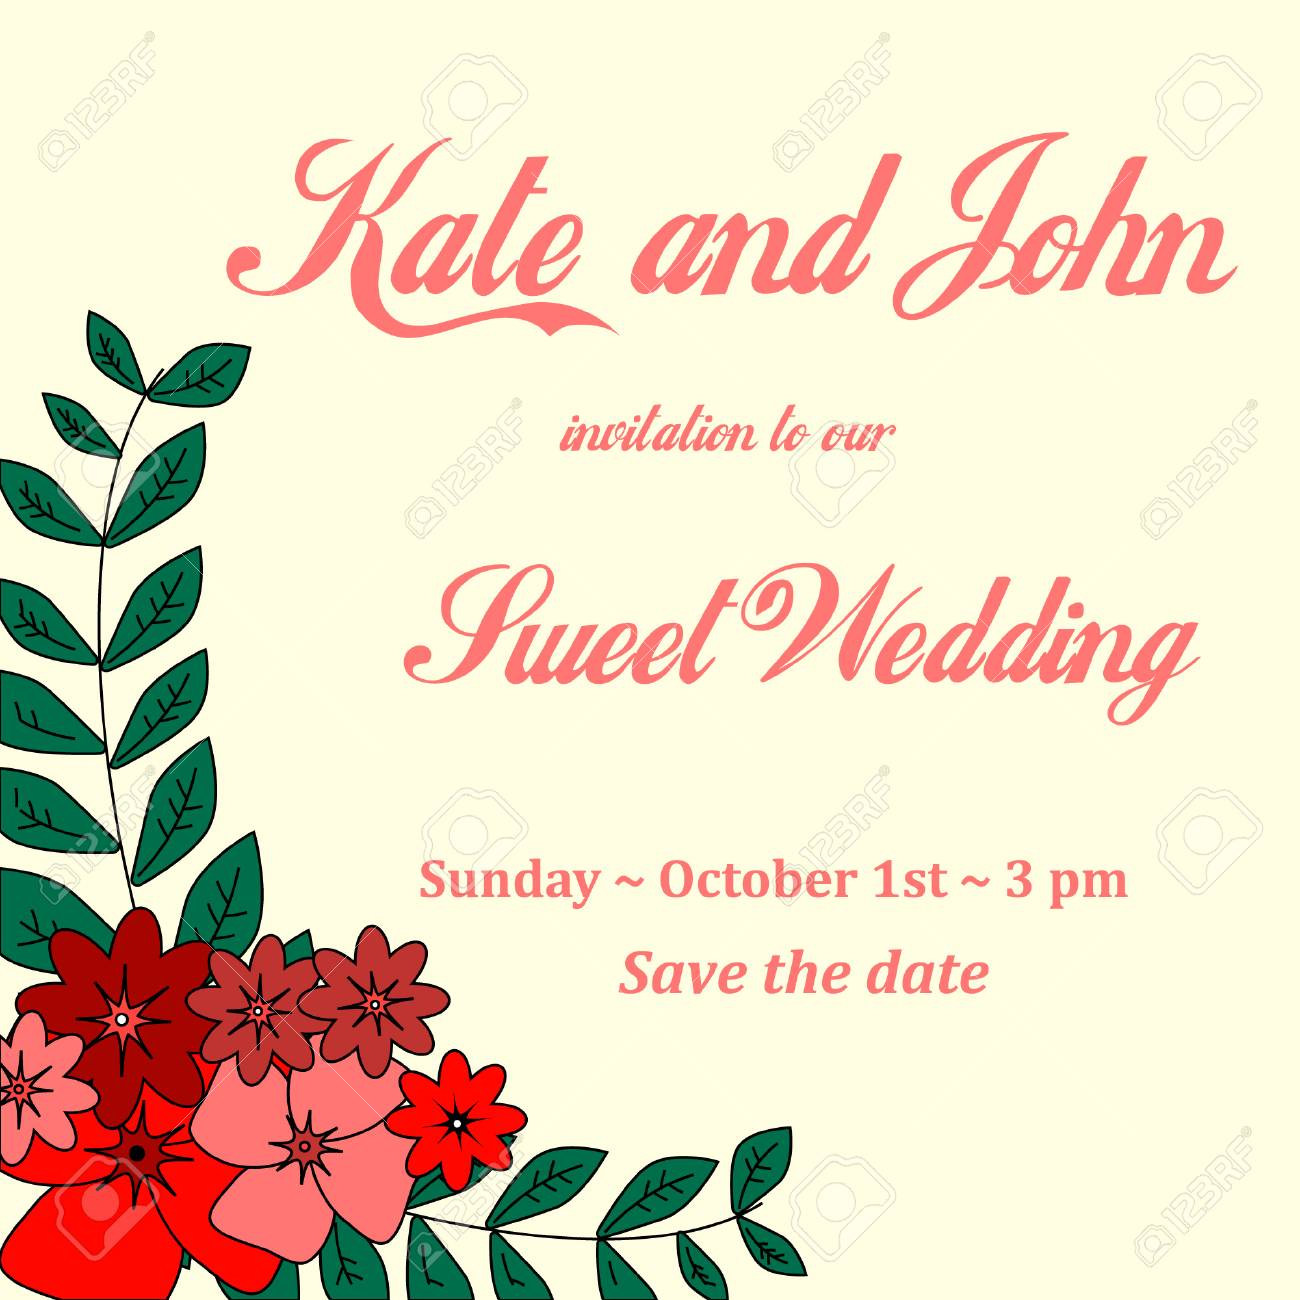 Invitation Card For Wedding Birthday With Flowers Royalty Free